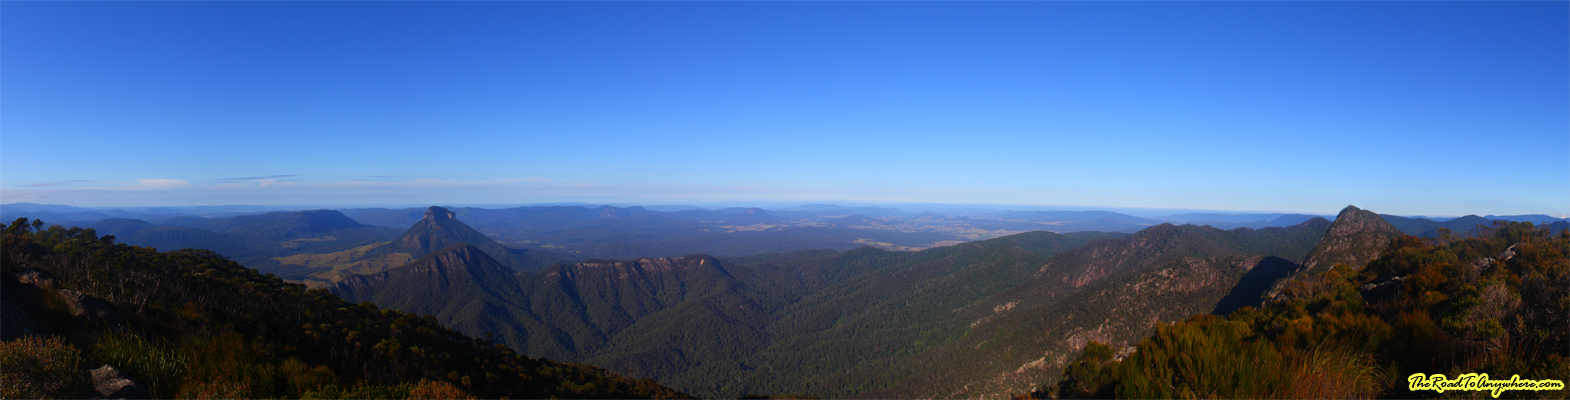 Panorama from the summit of Mount Barney East Peak in Queensland, Australia